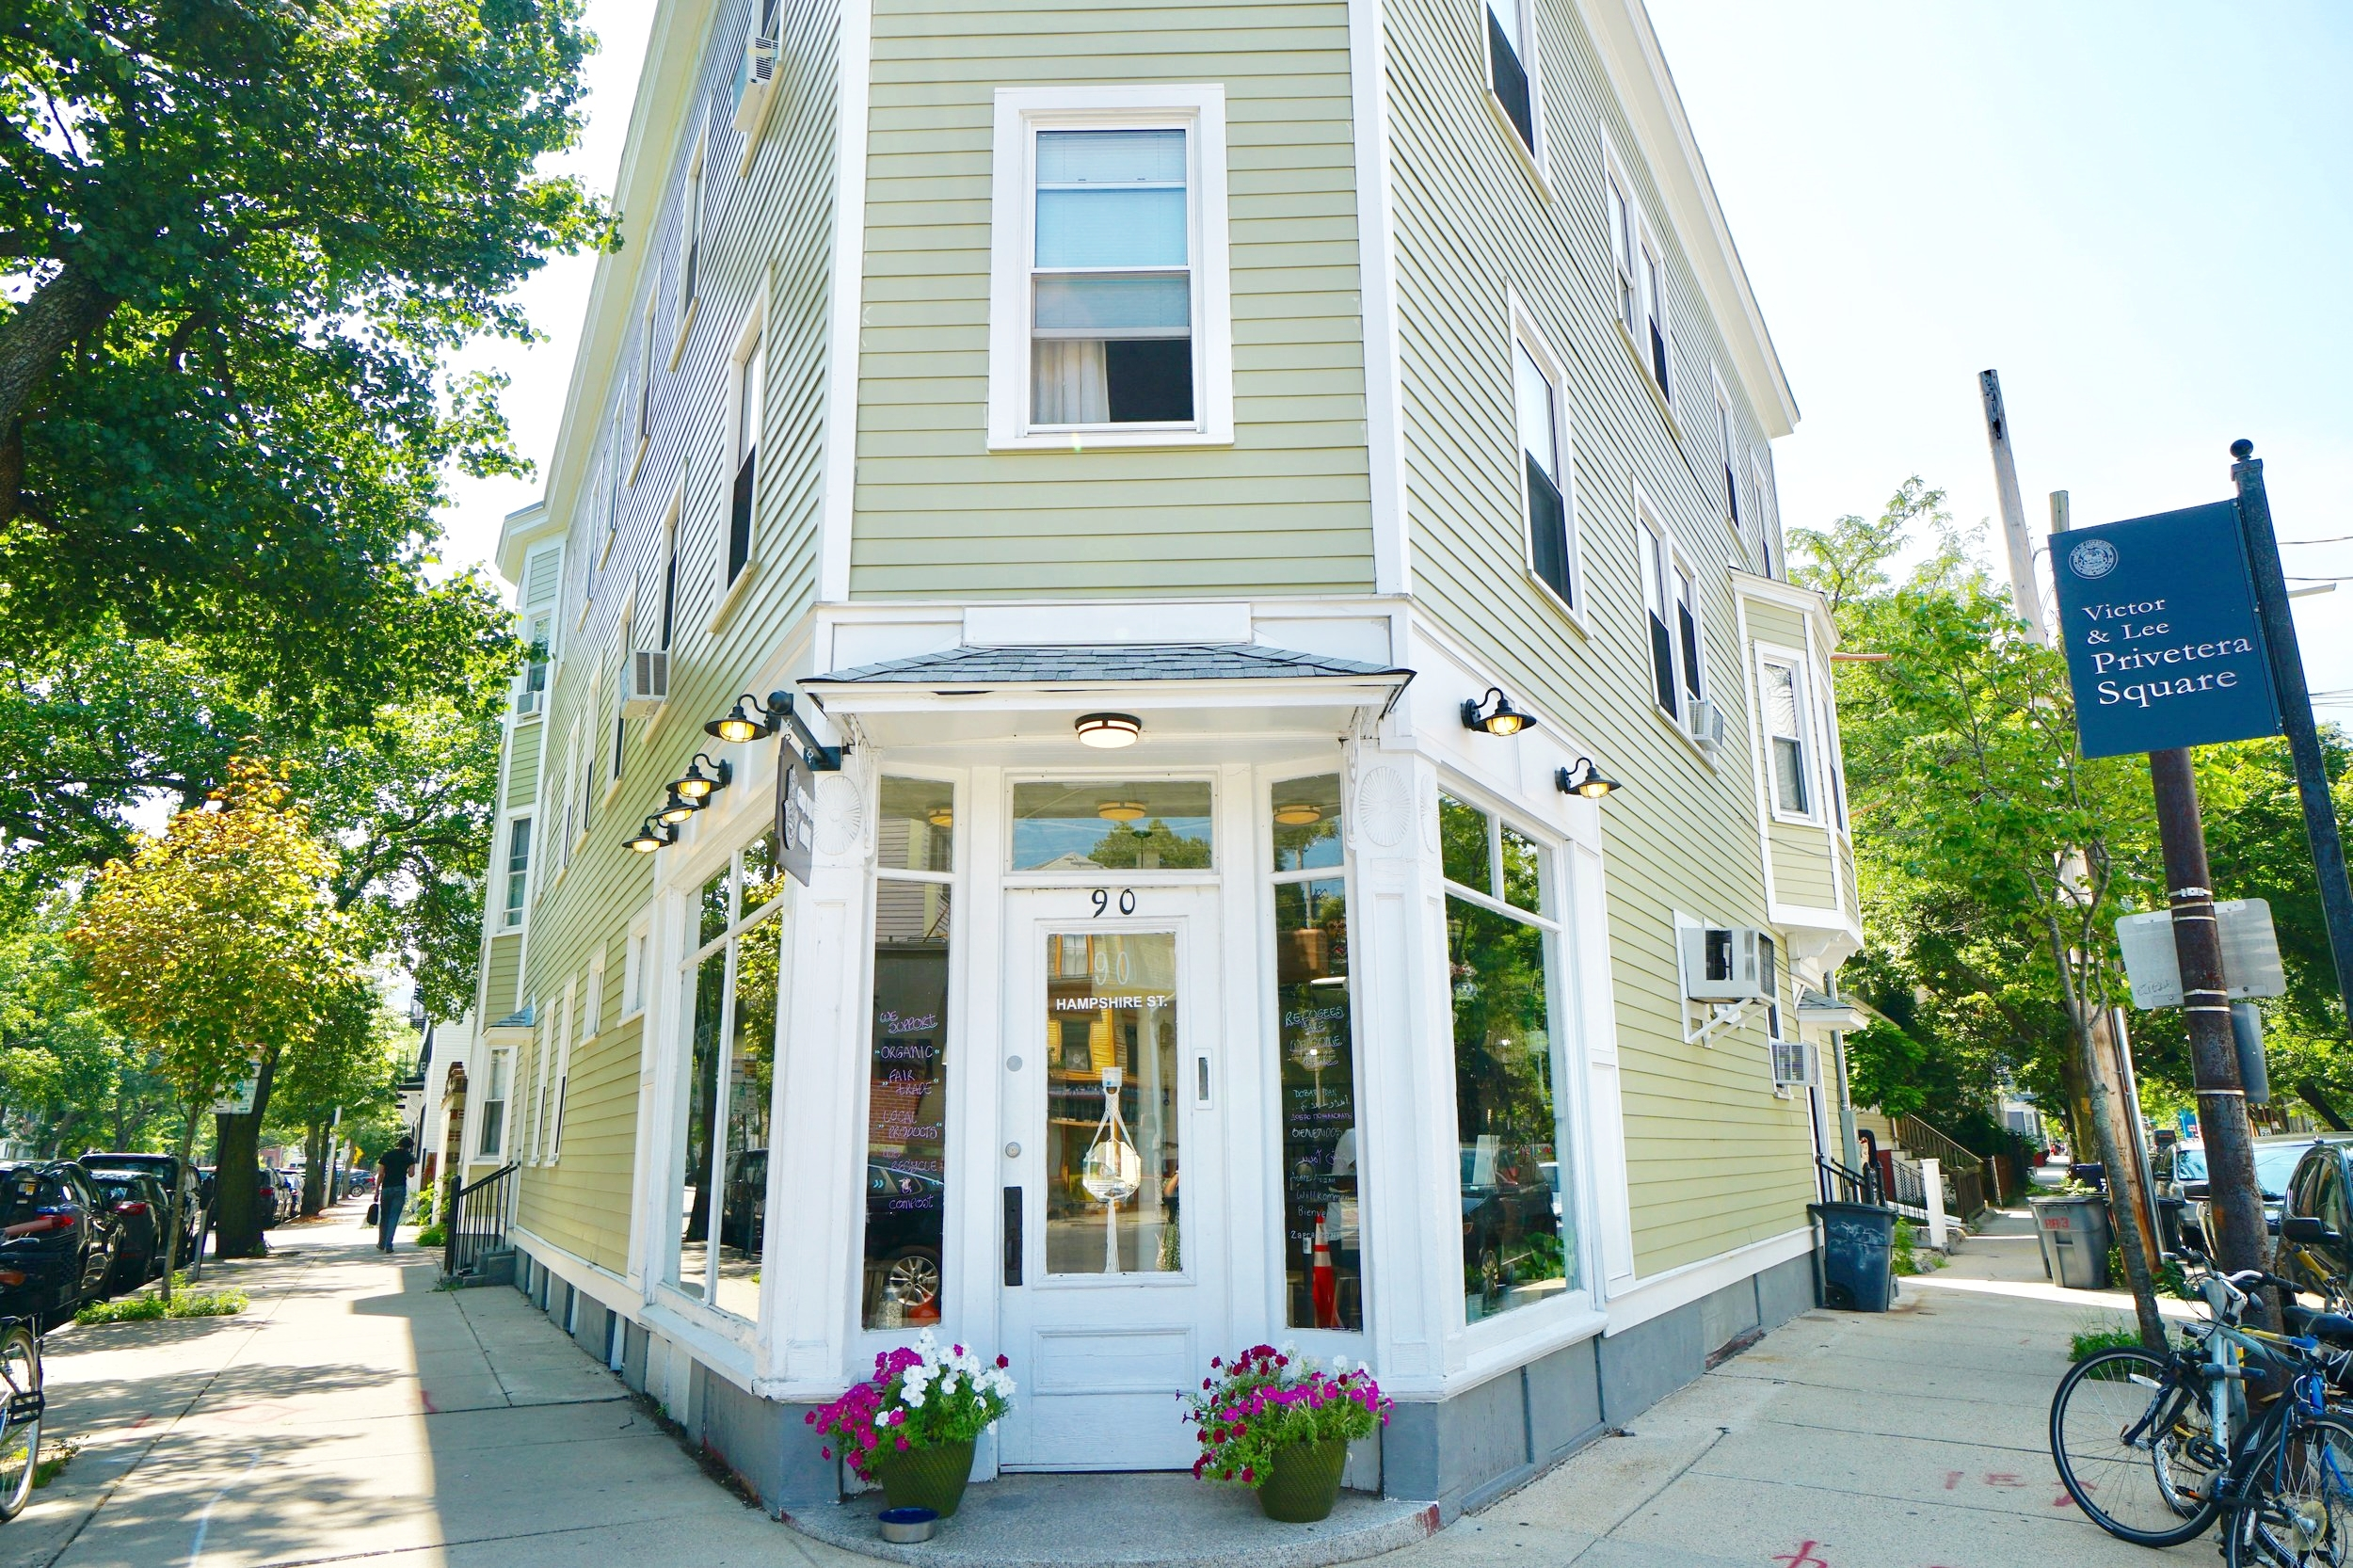 294-302 WINDSOR STREET - CAMBRIDGE, MA